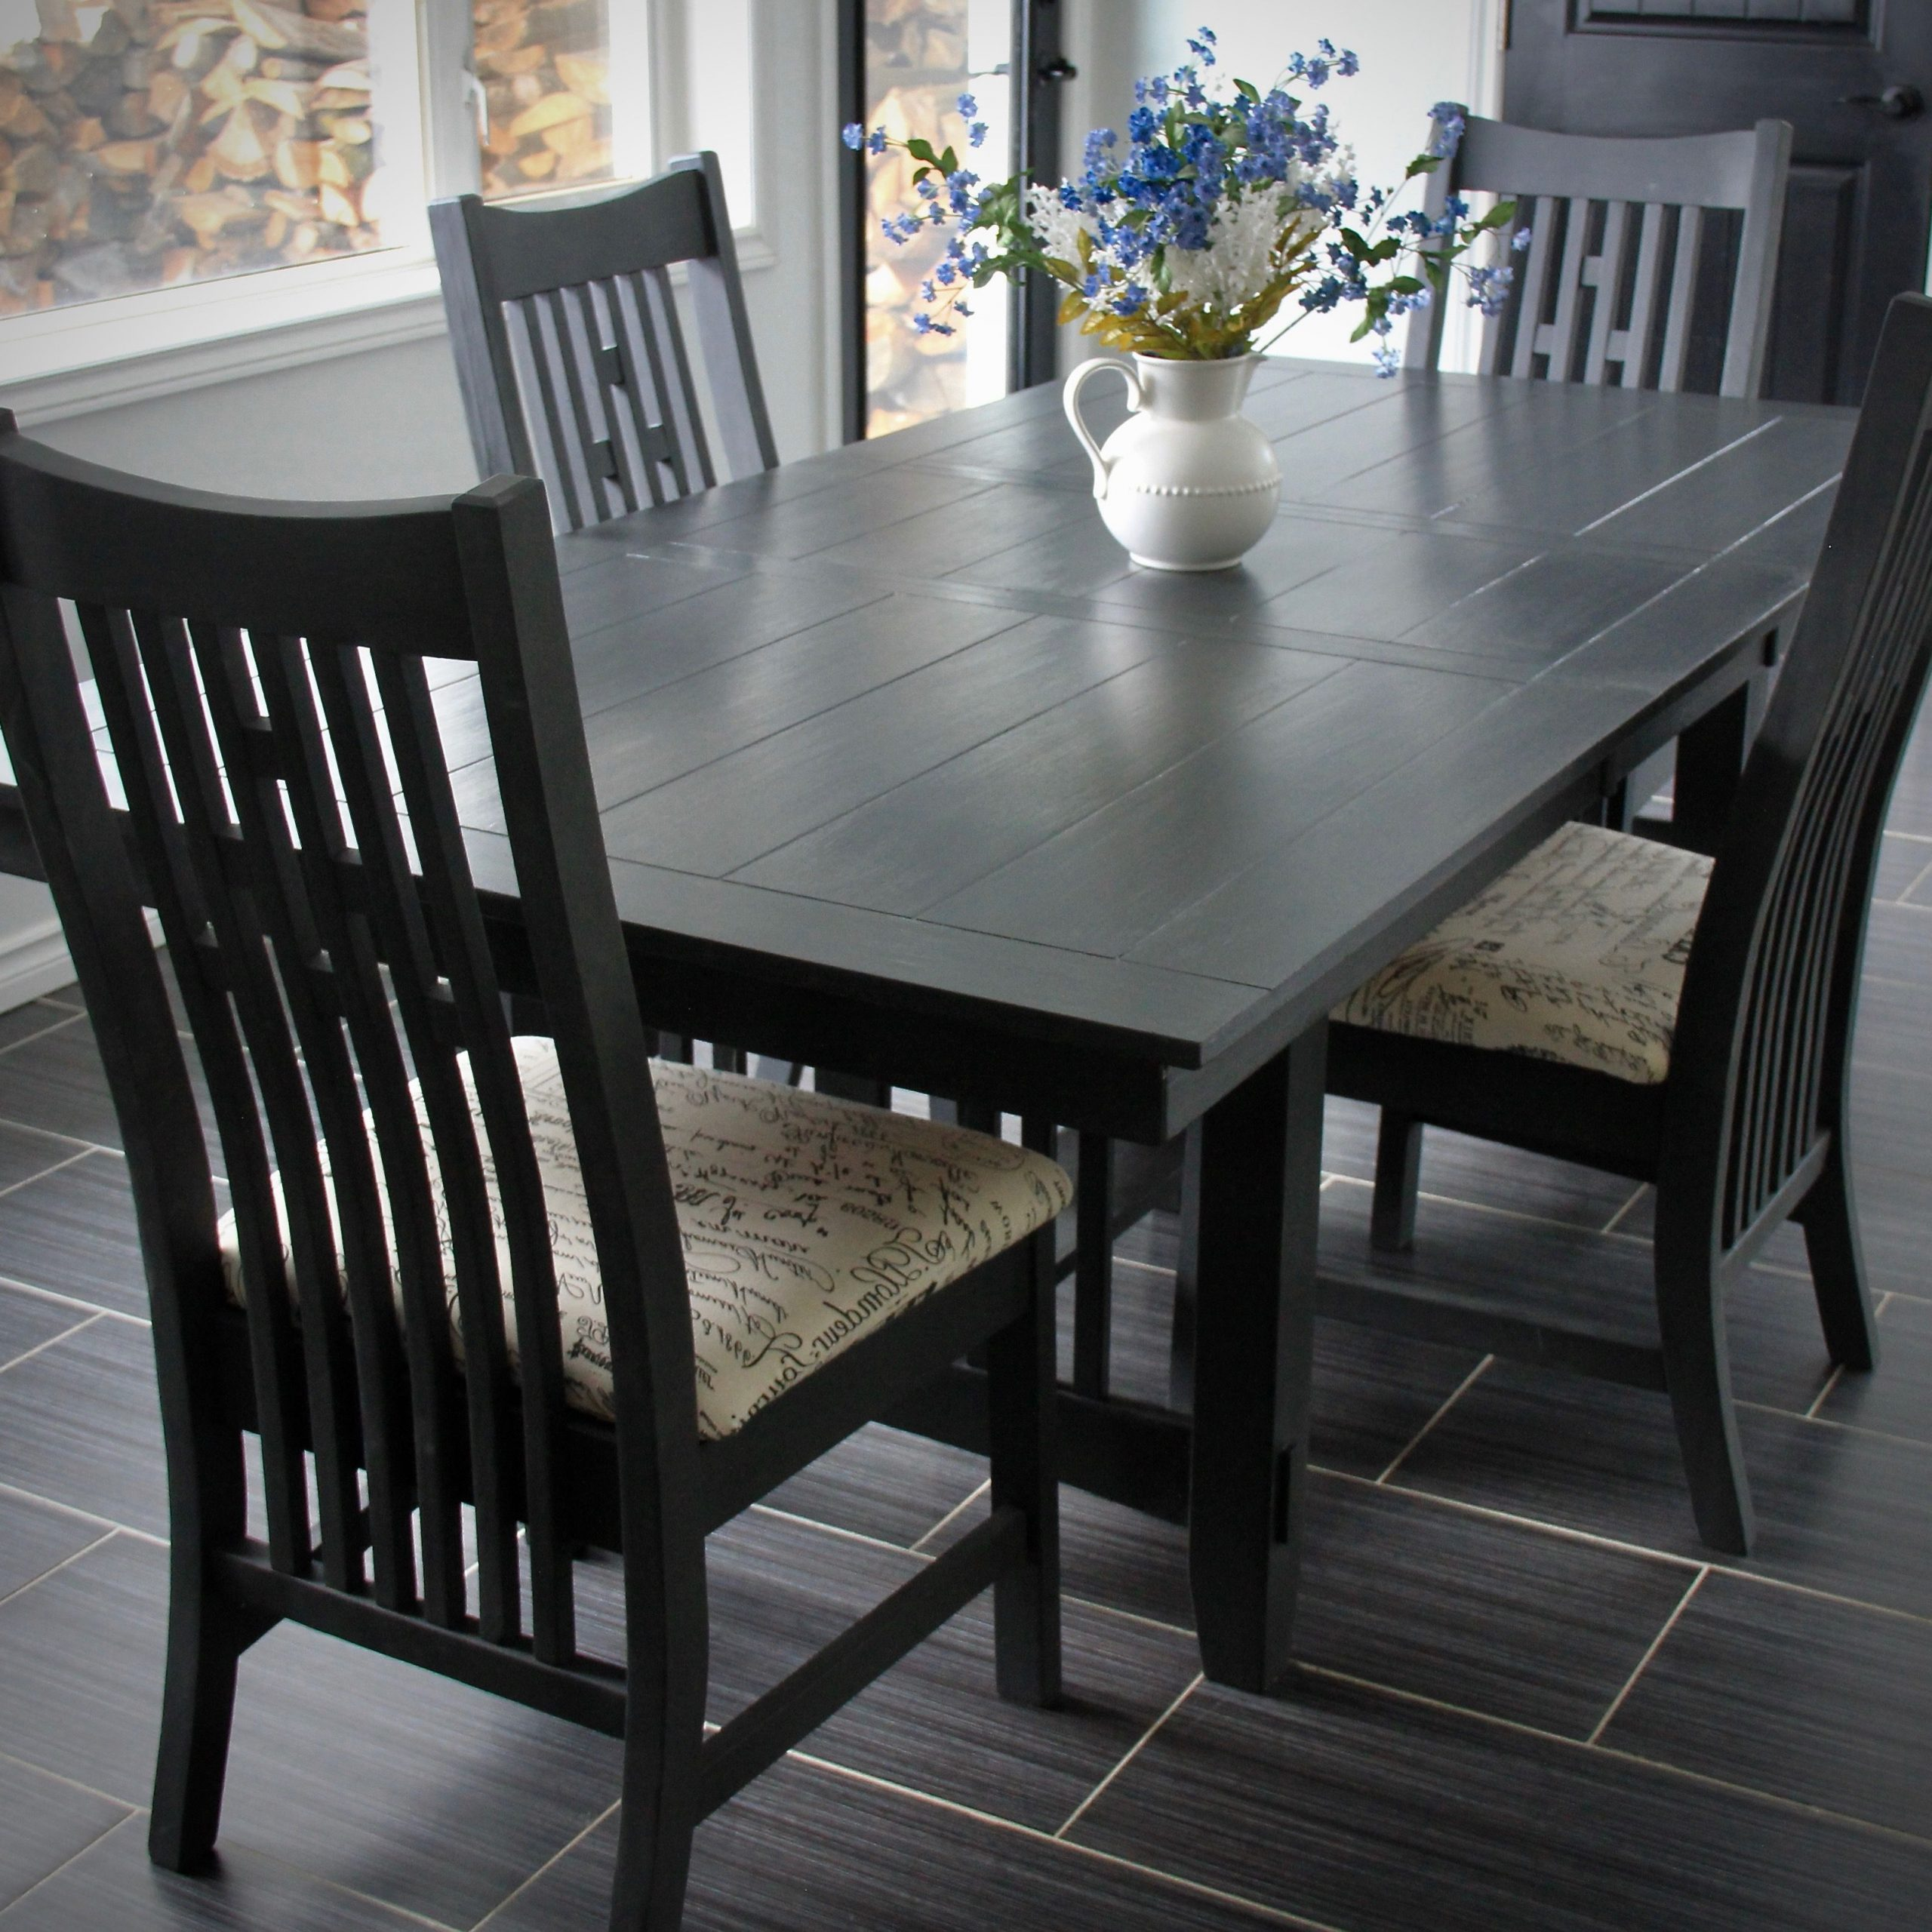 Salvaged Black Shayne Drop Leaf Kitchen Tables Regarding 2019 Mission Style Table Painted In Annie Sloan's Graphite (View 16 of 25)